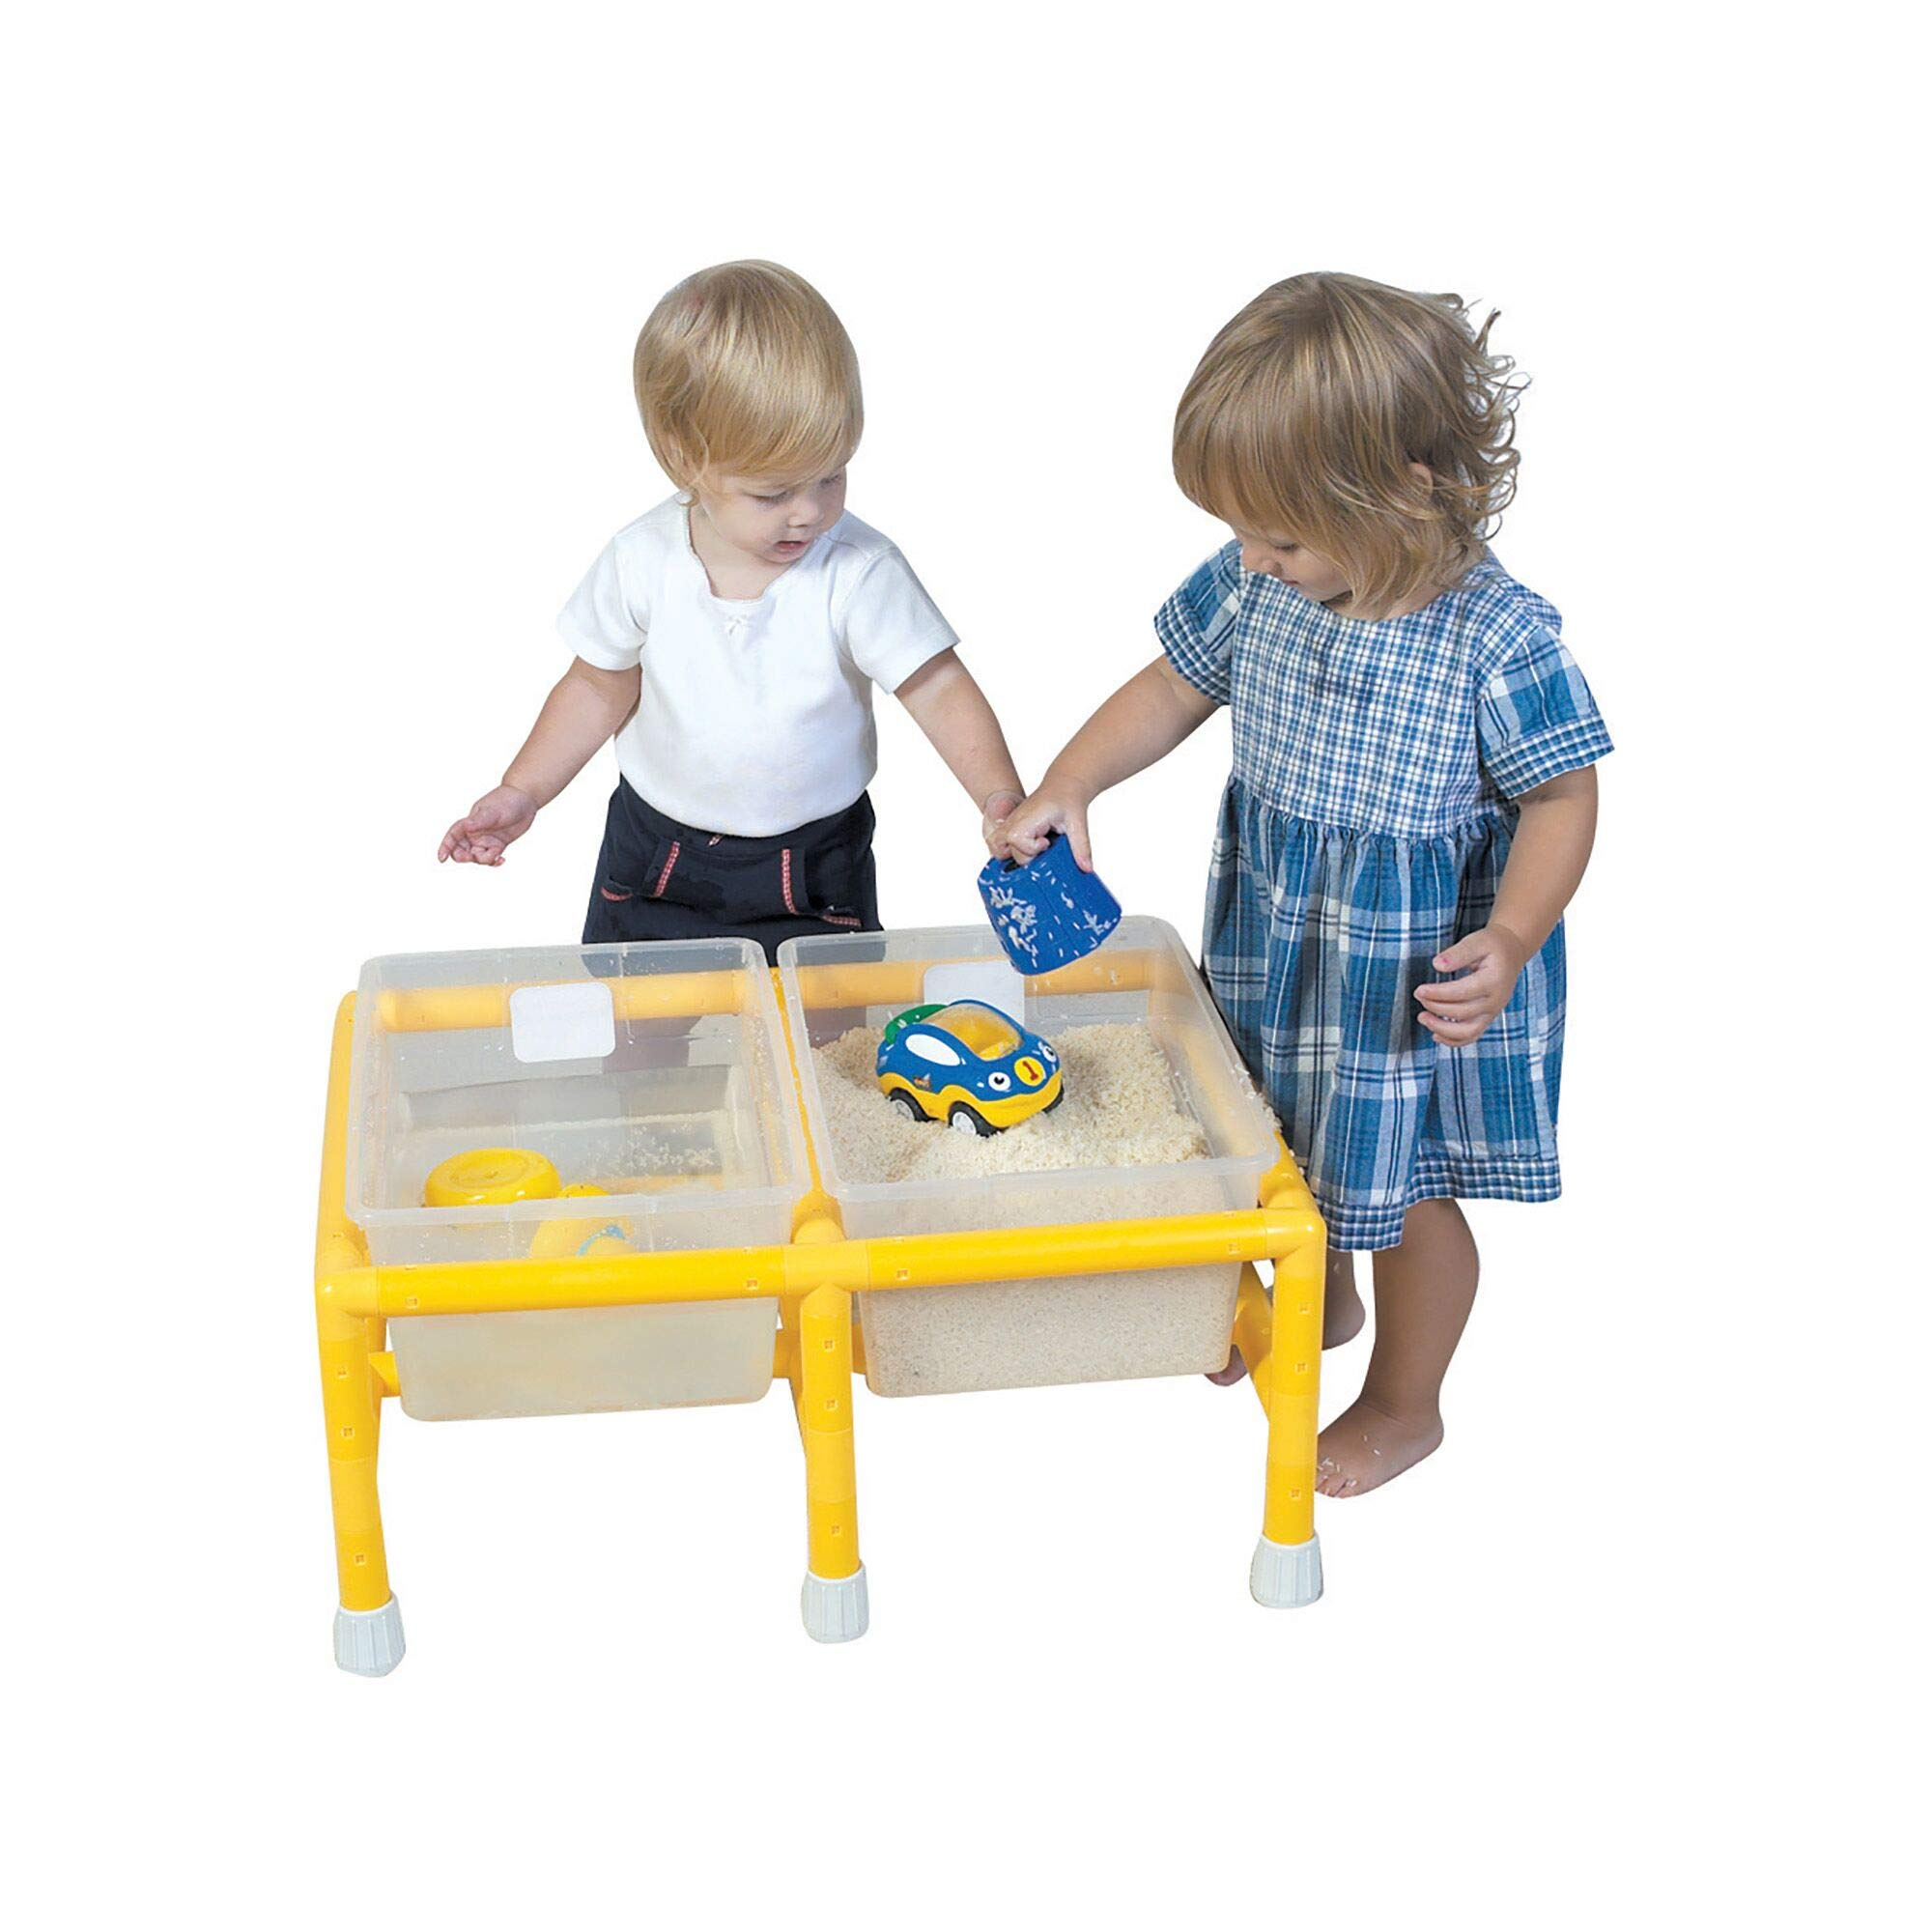 Children's Factory Mini Discovery Table by Children's Factory